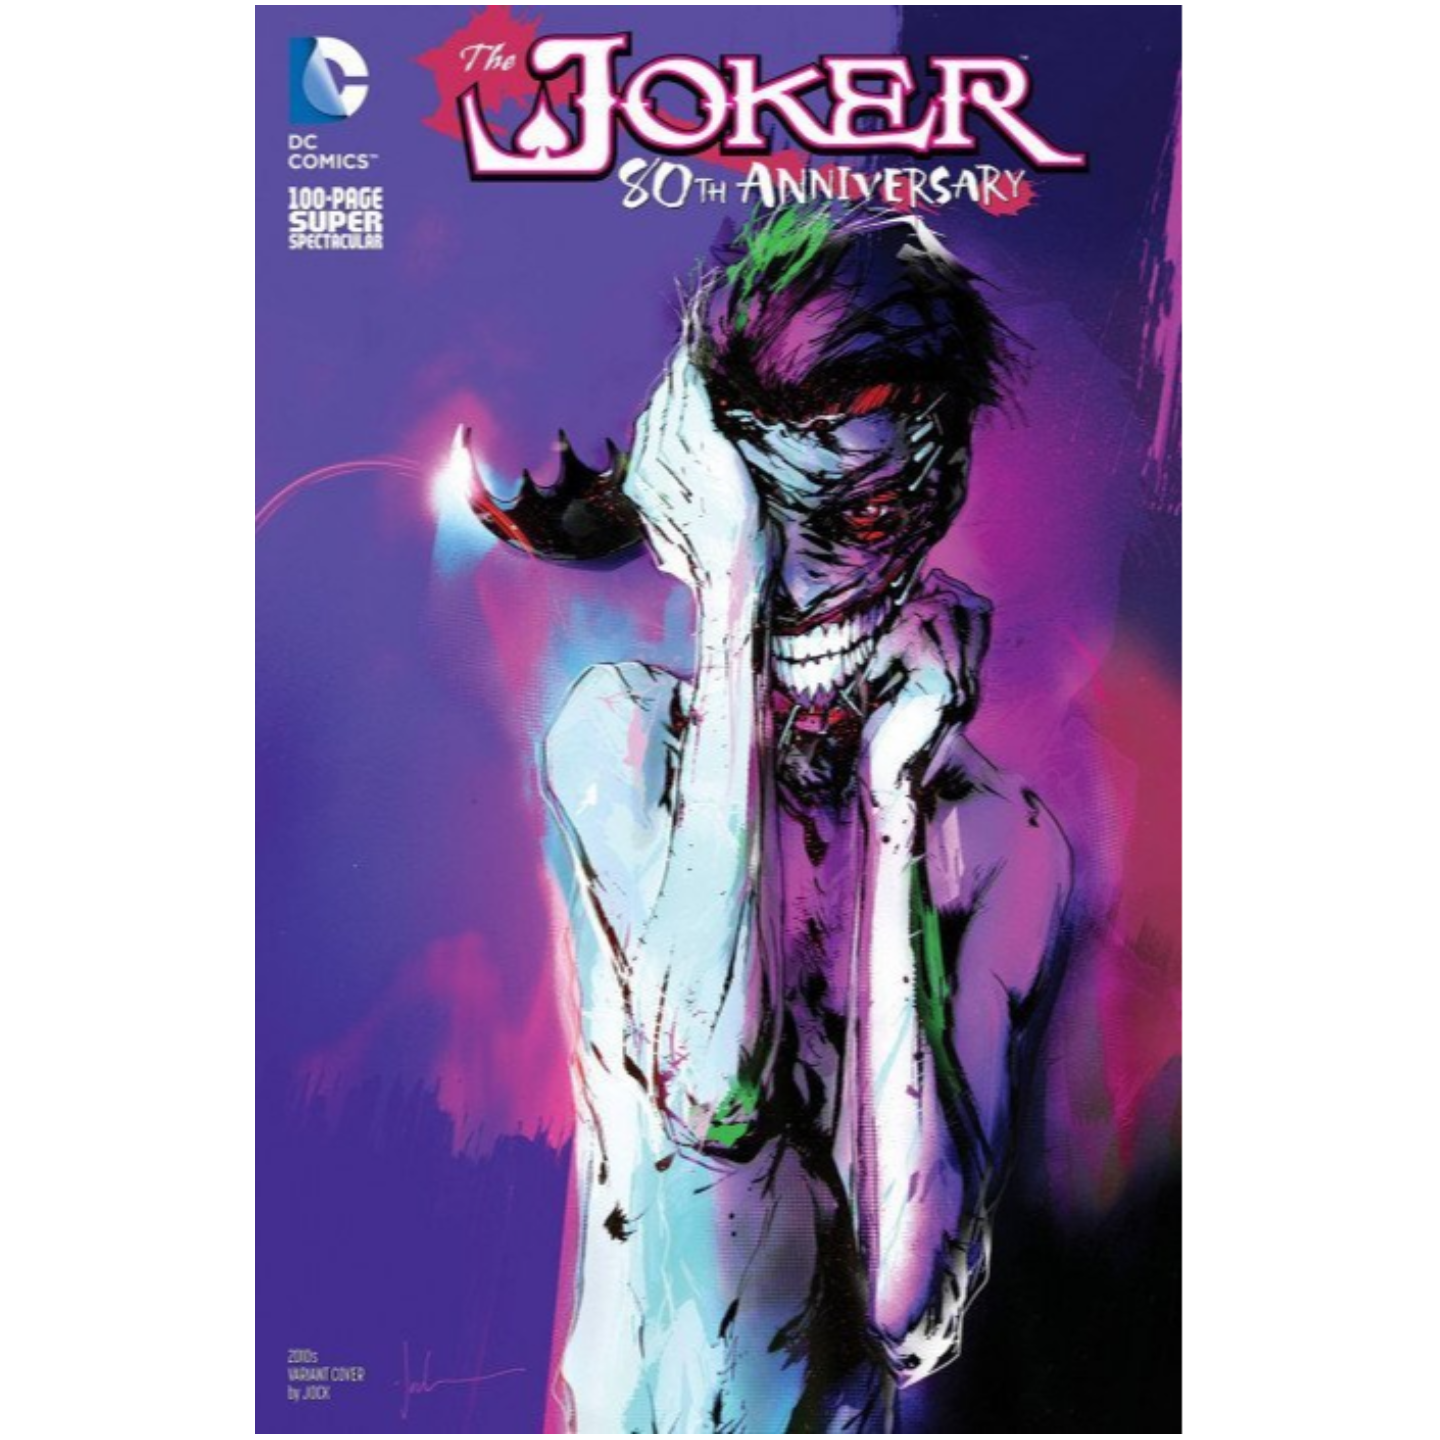 THE JOKER 80TH ANNIVERSARY 100-PAGE SUPER SPECTACULAR 1 2010S VARIANT COVER BY JOCK